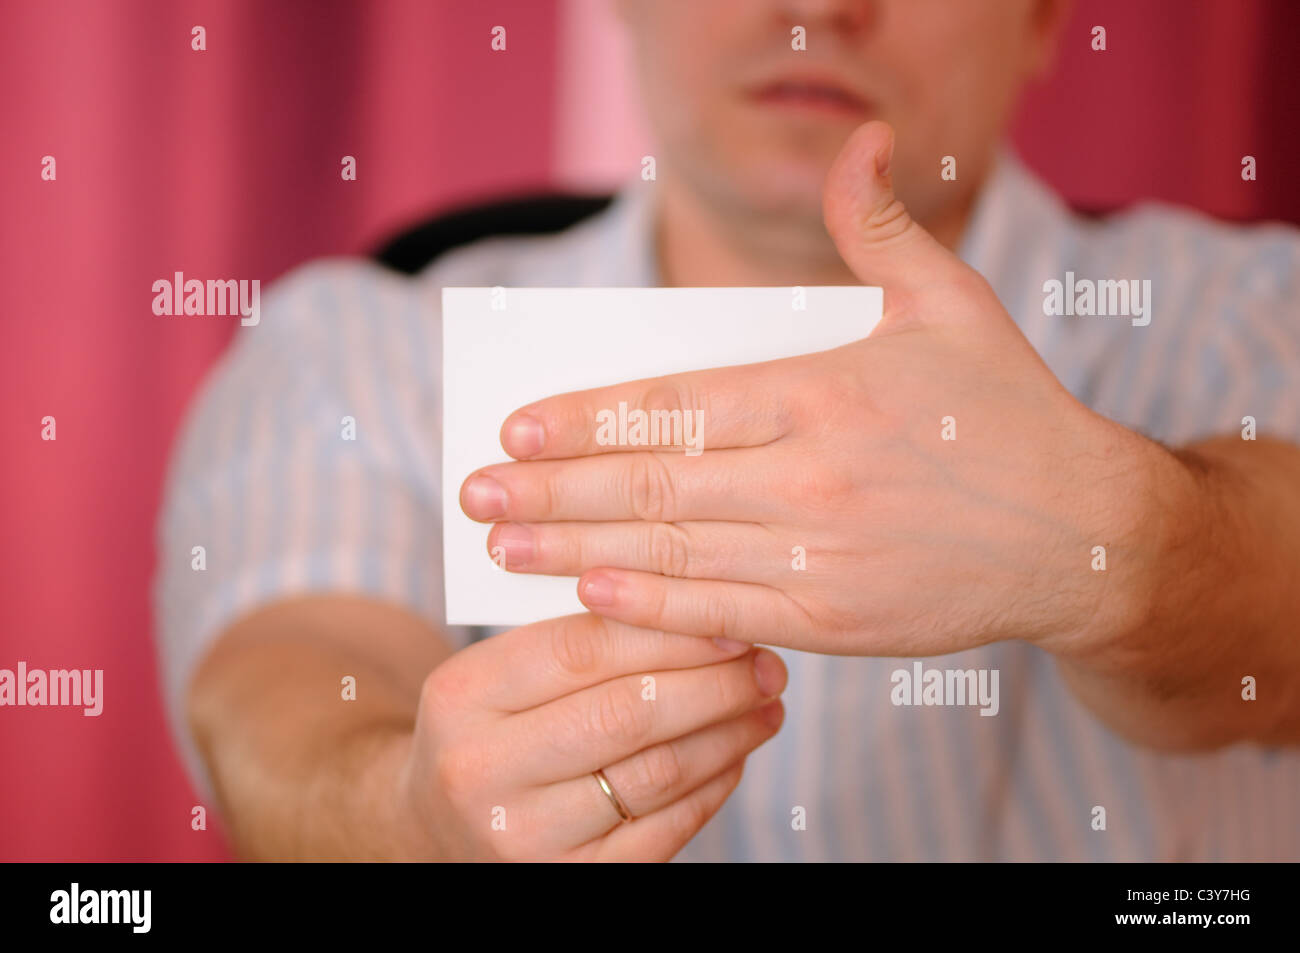 The man closes a hand card blank - Stock Image